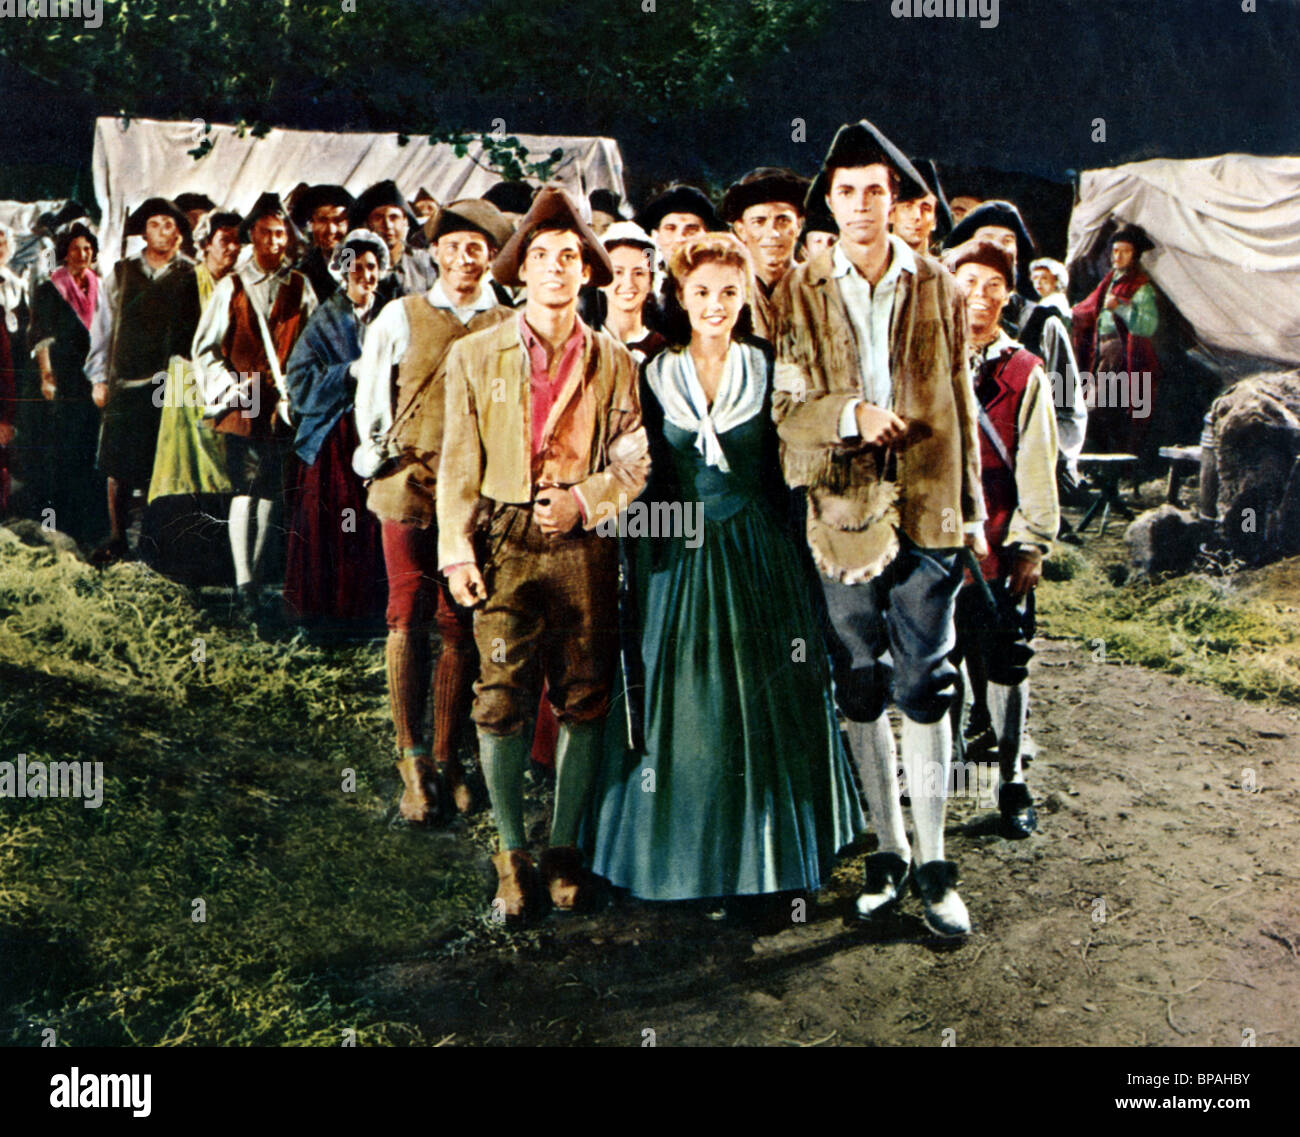 HAL STALMASTER LUANA PATTEN RICHARD BEYMER JOHNNY TREMAIN 1957